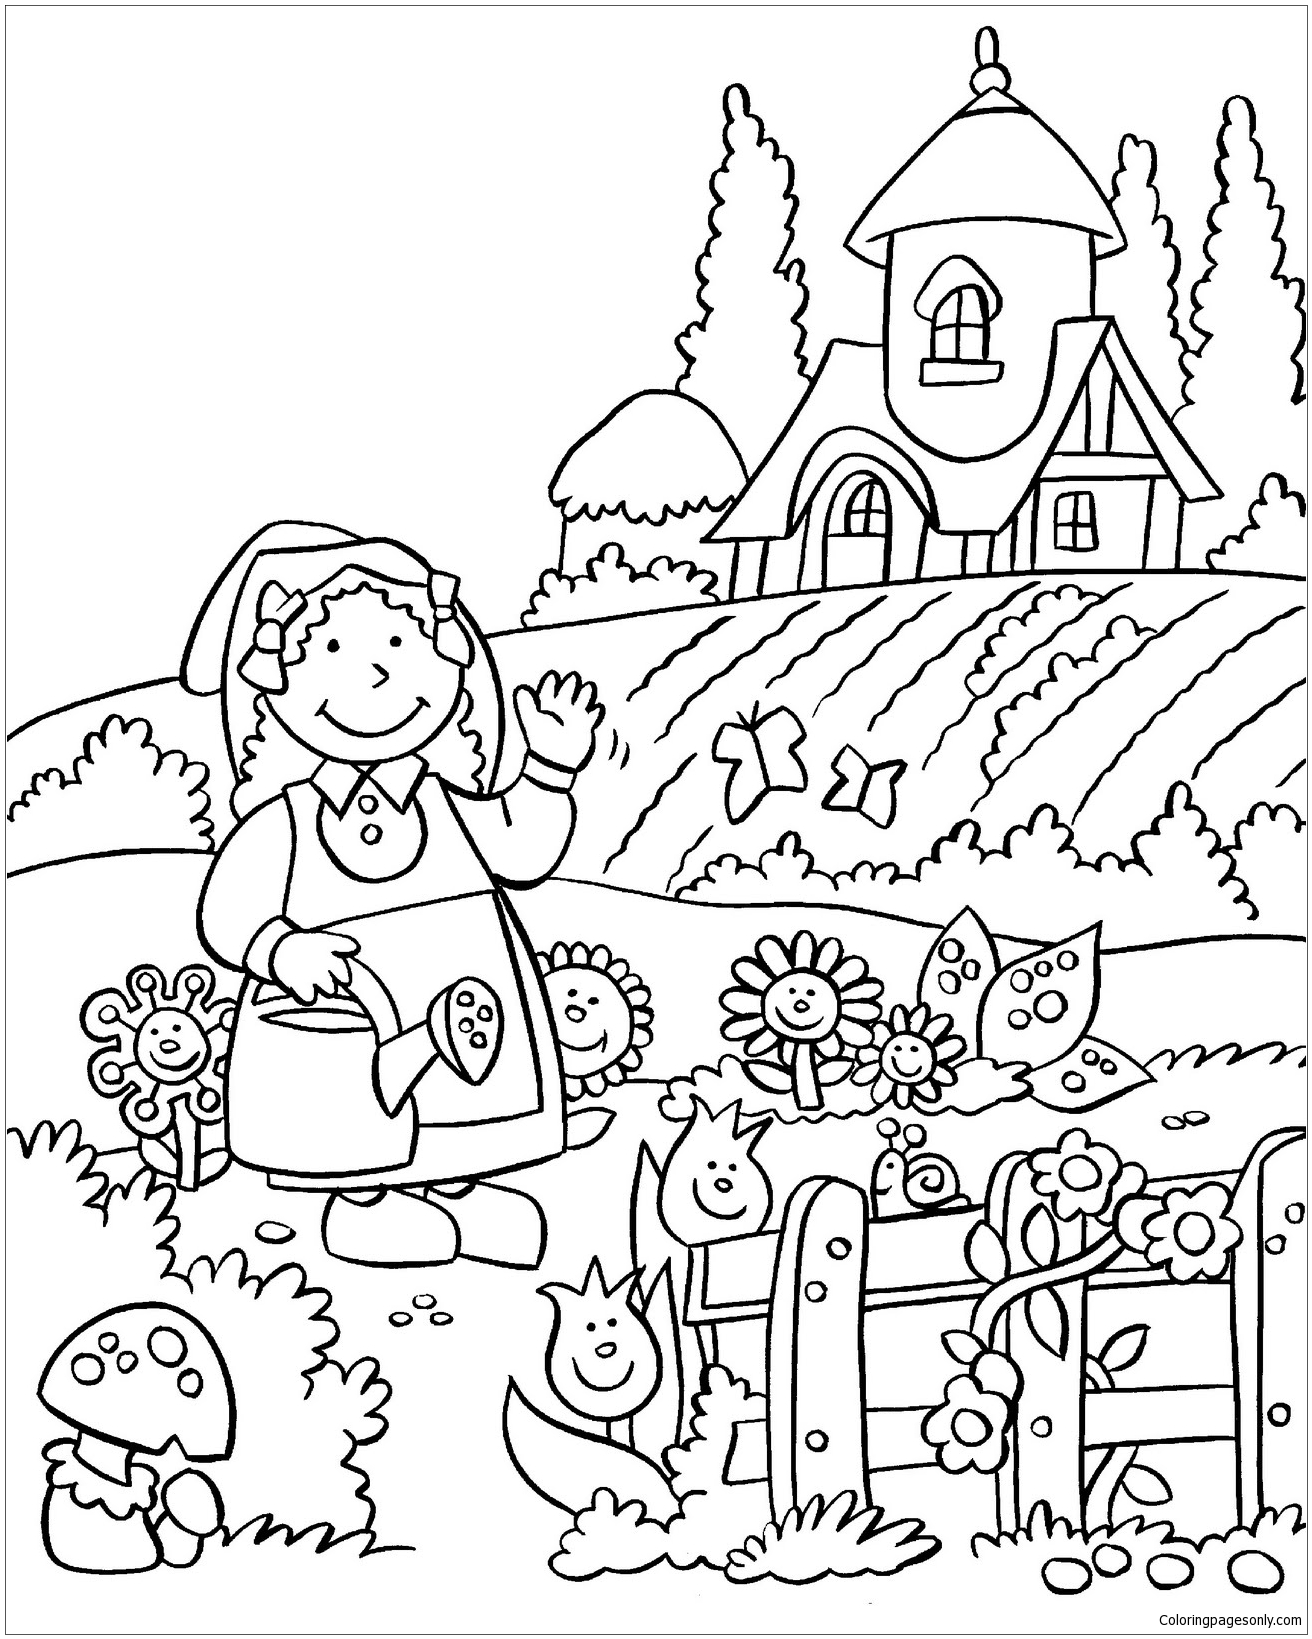 - The Beautiful Flower Garden Coloring Page - Free Coloring Pages Online